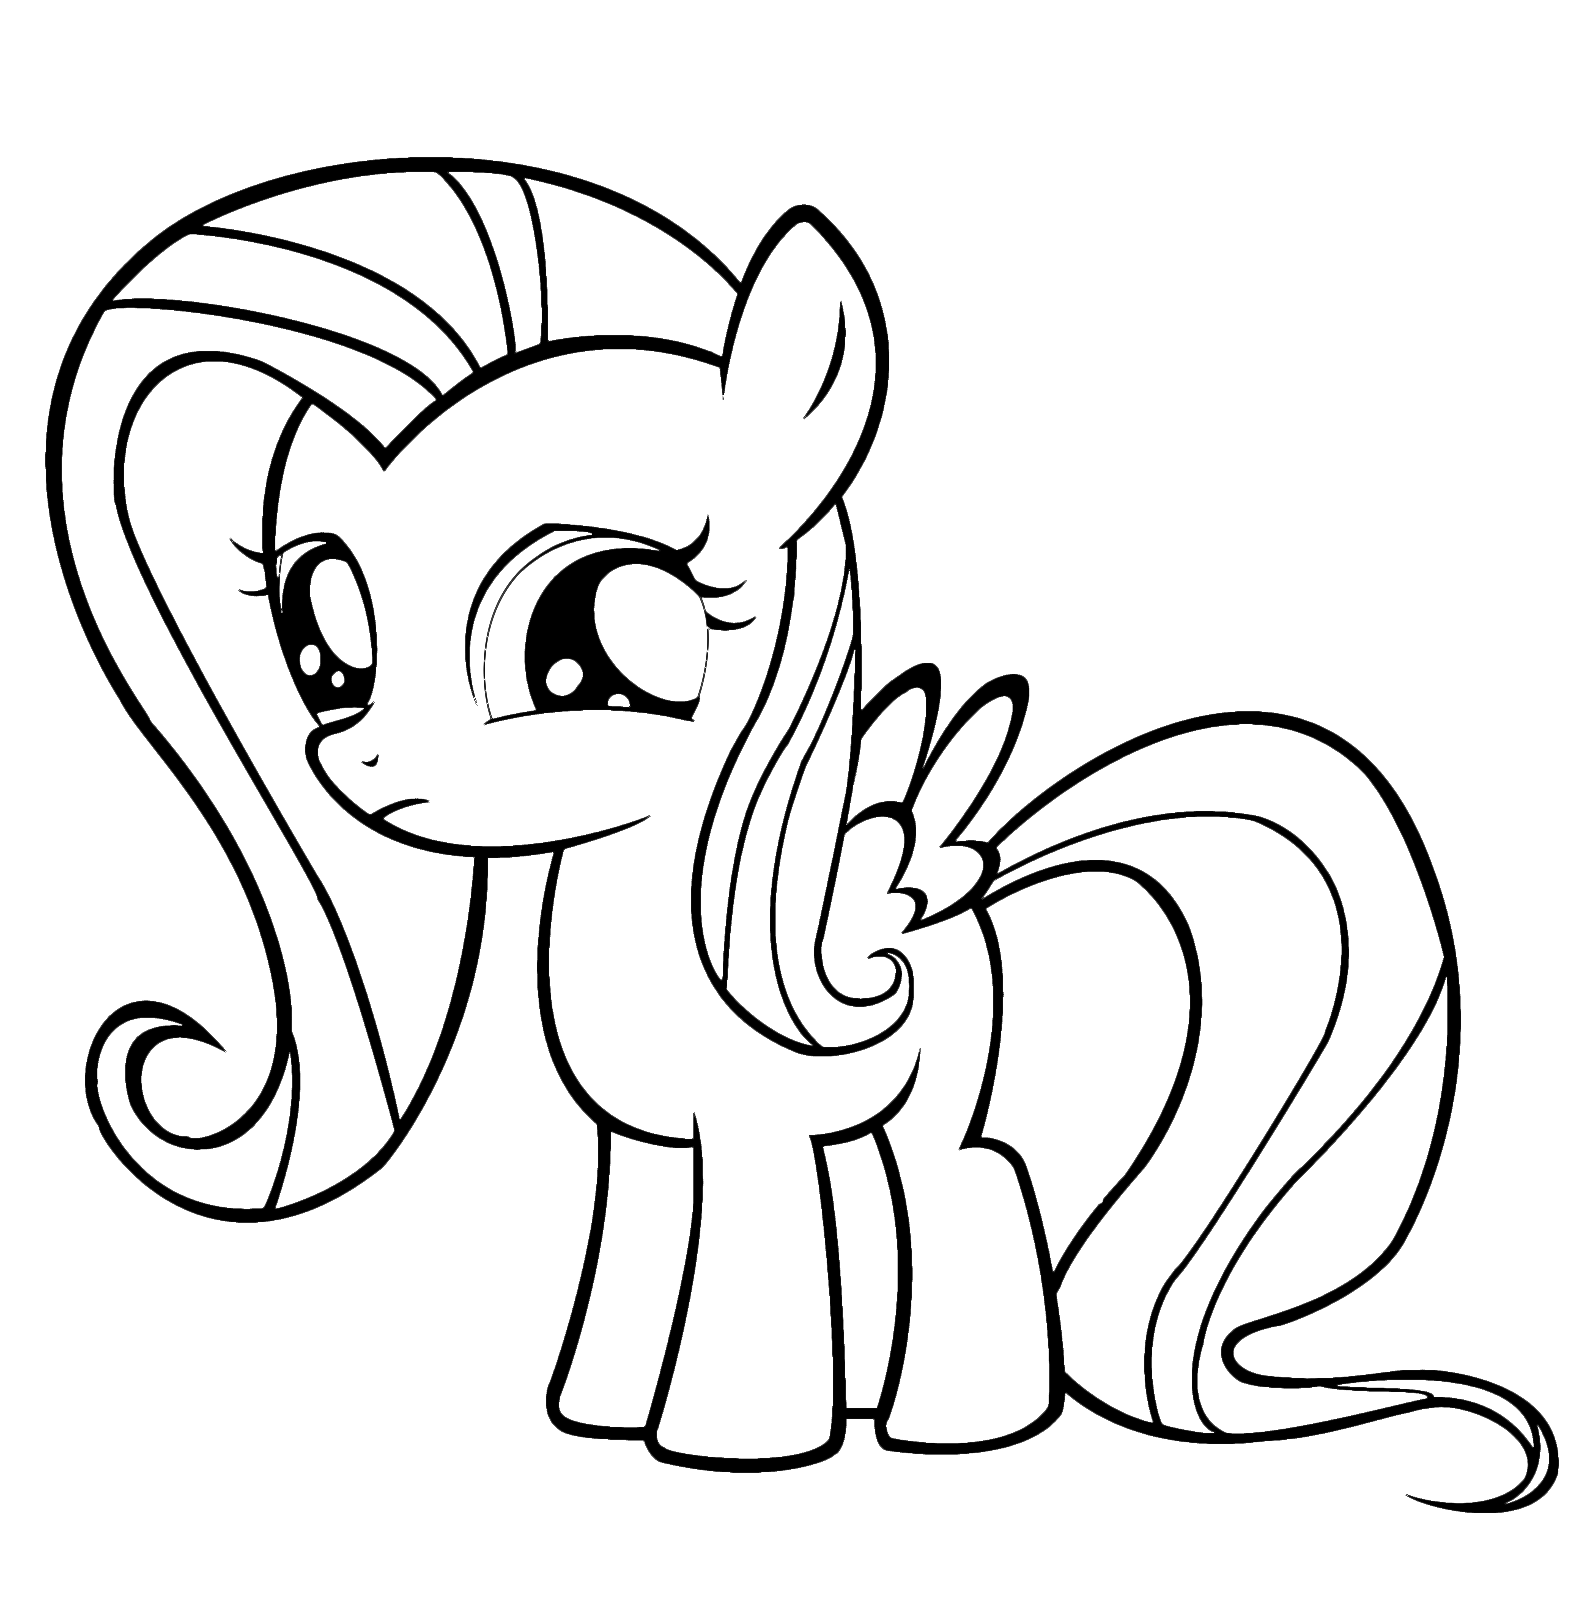 My Little Pony - Fluttershy with her sweet look